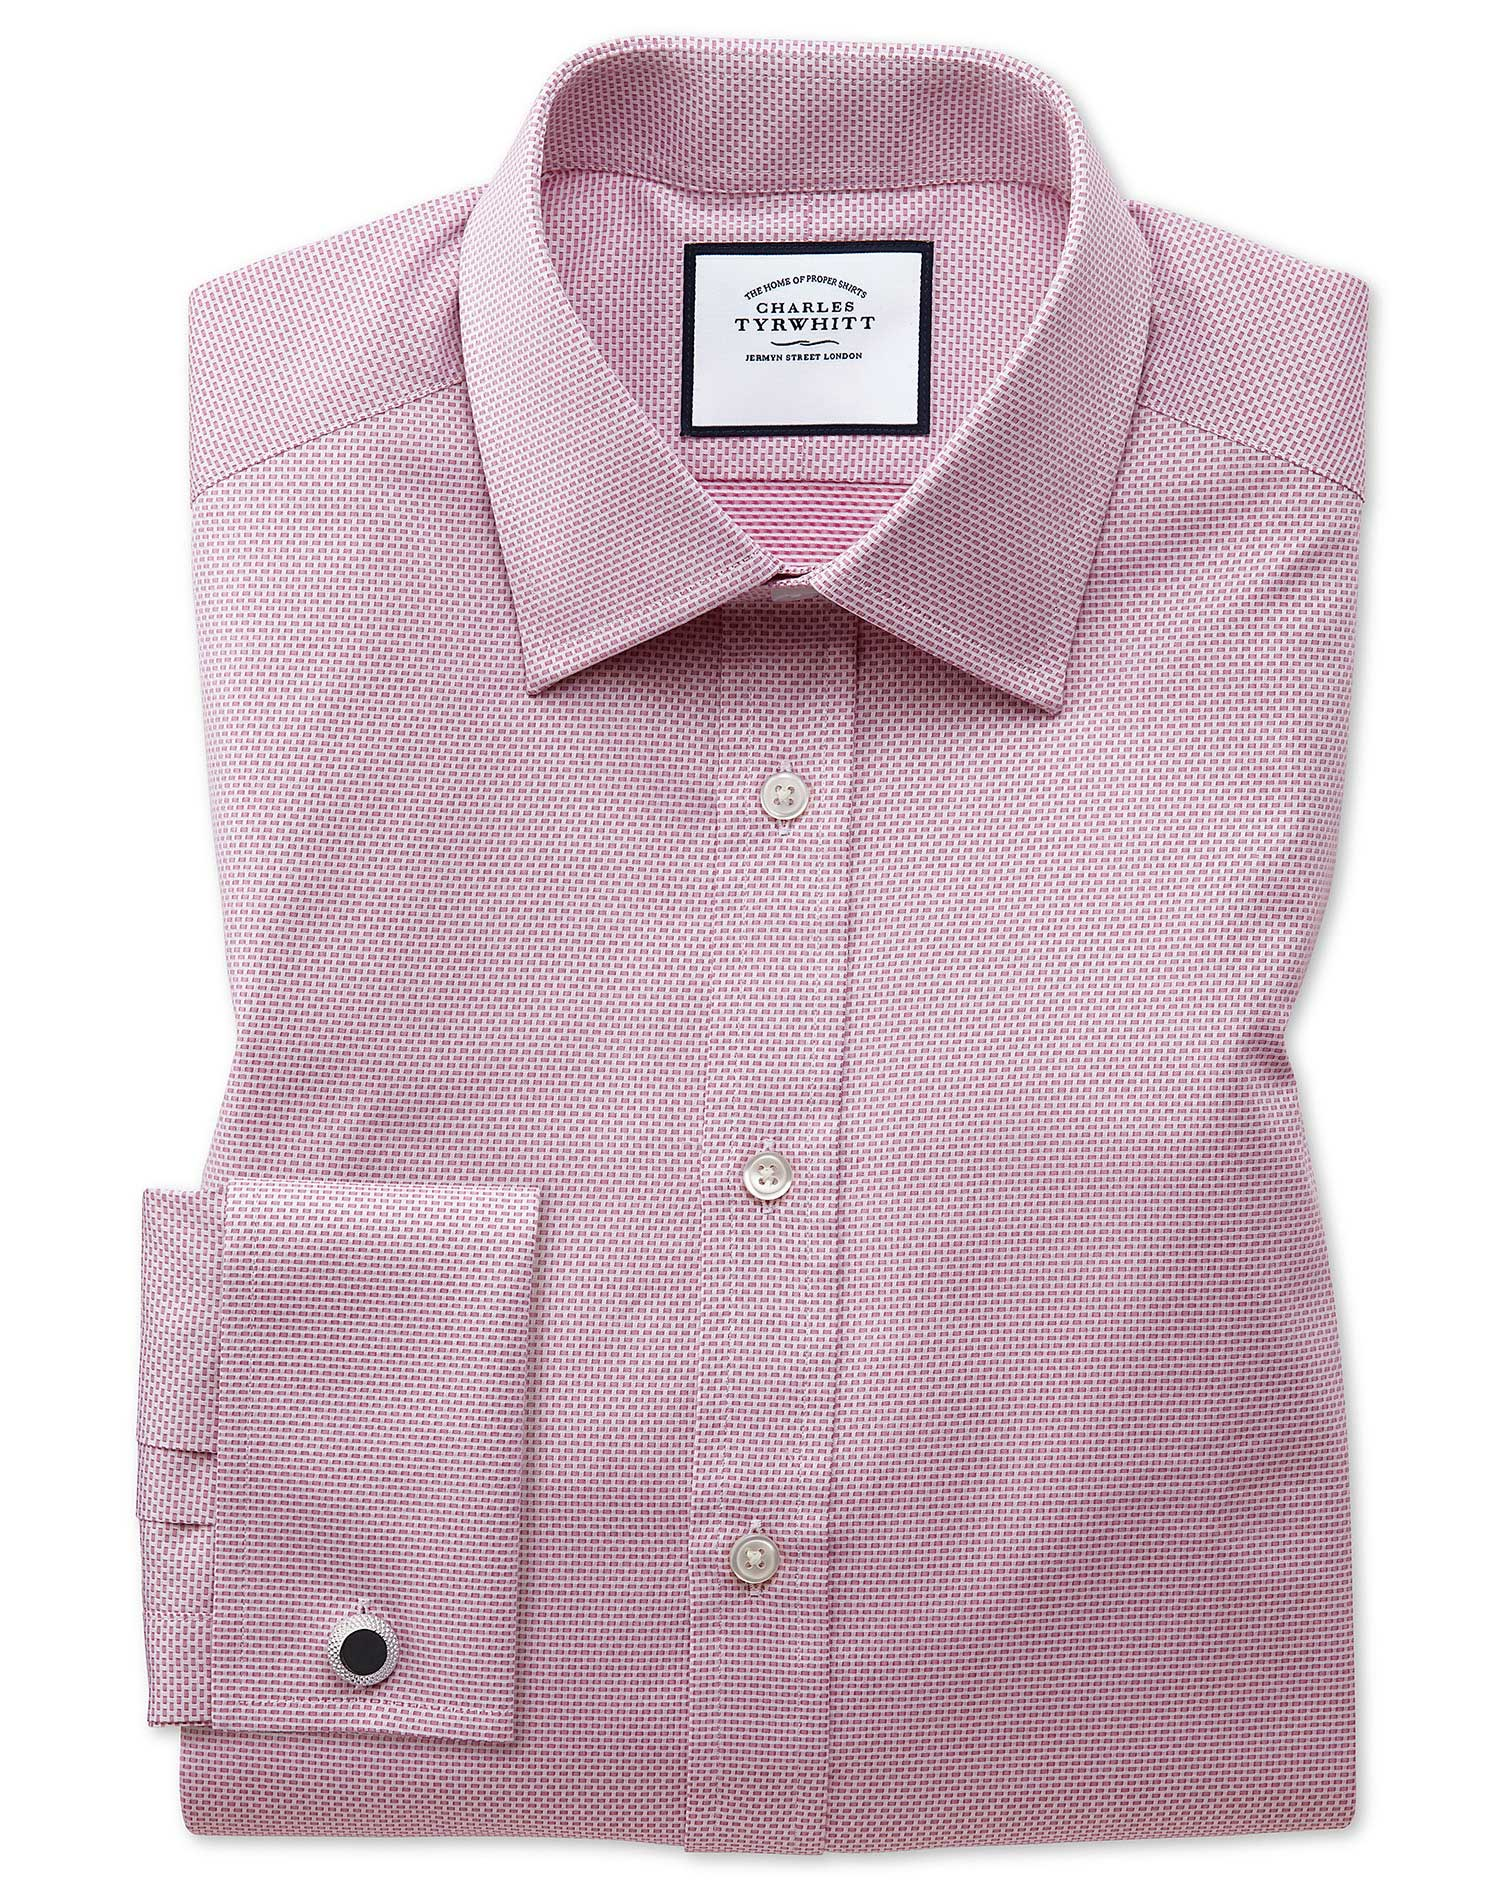 Extra Slim Fit Magenta Cube Weave Egyptian Cotton Formal Shirt Double Cuff Size 15/33 by Charles Tyr